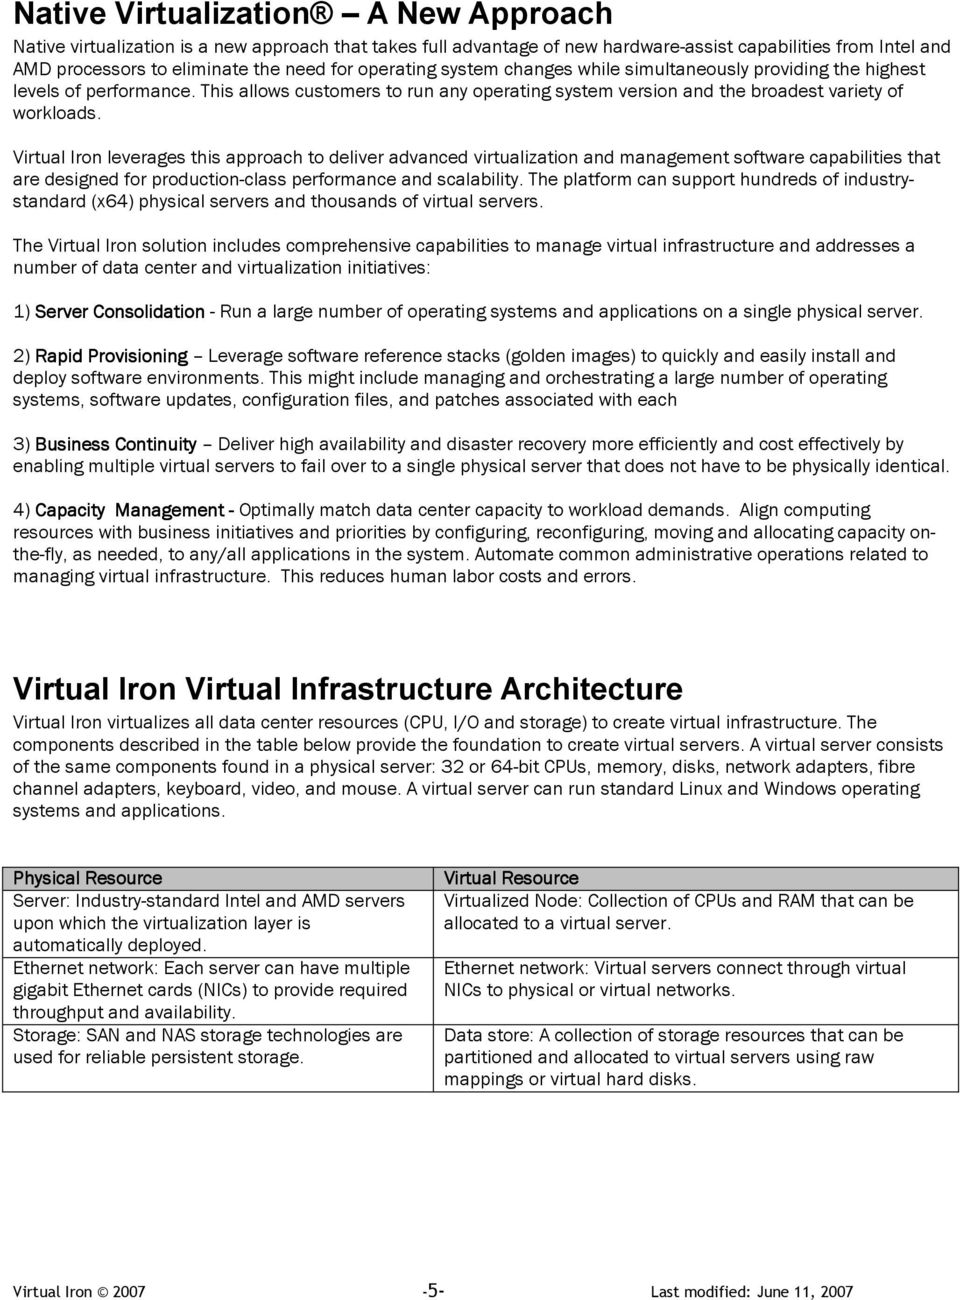 Virtual Iron leverages this approach to deliver advanced virtualization and management software capabilities that are designed for production-class performance and scalability.